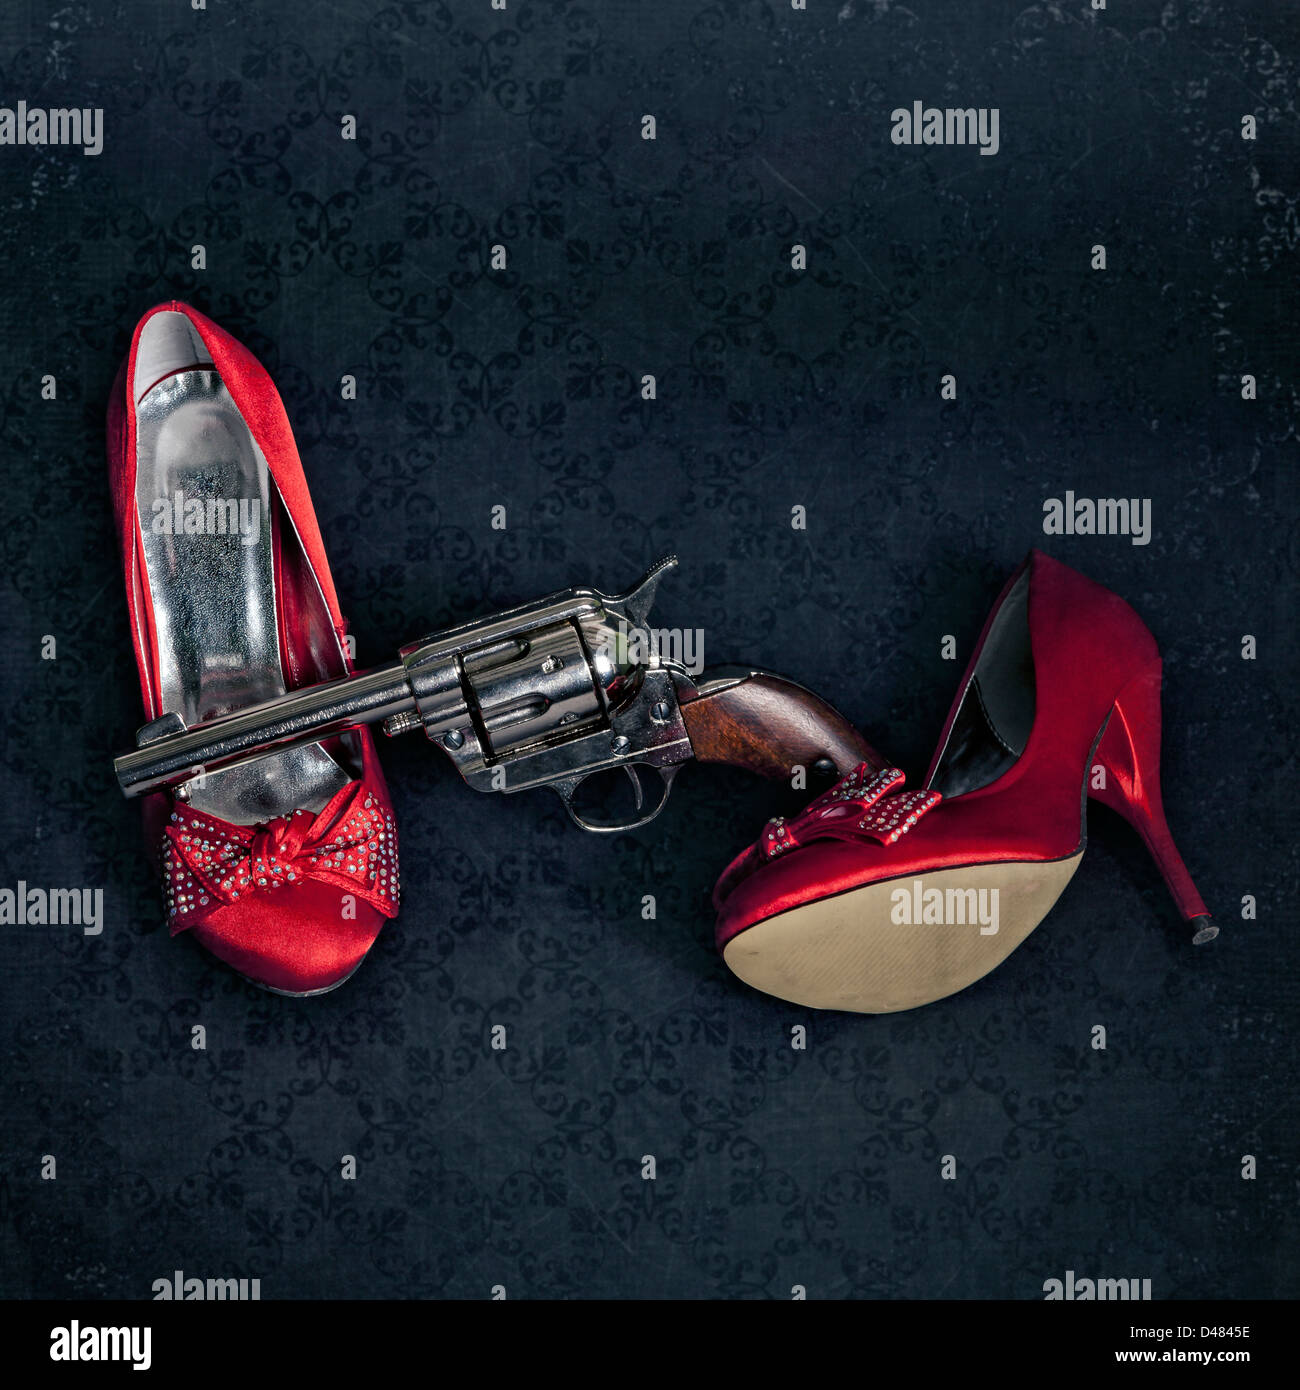 a gun with red high heels - Stock Image